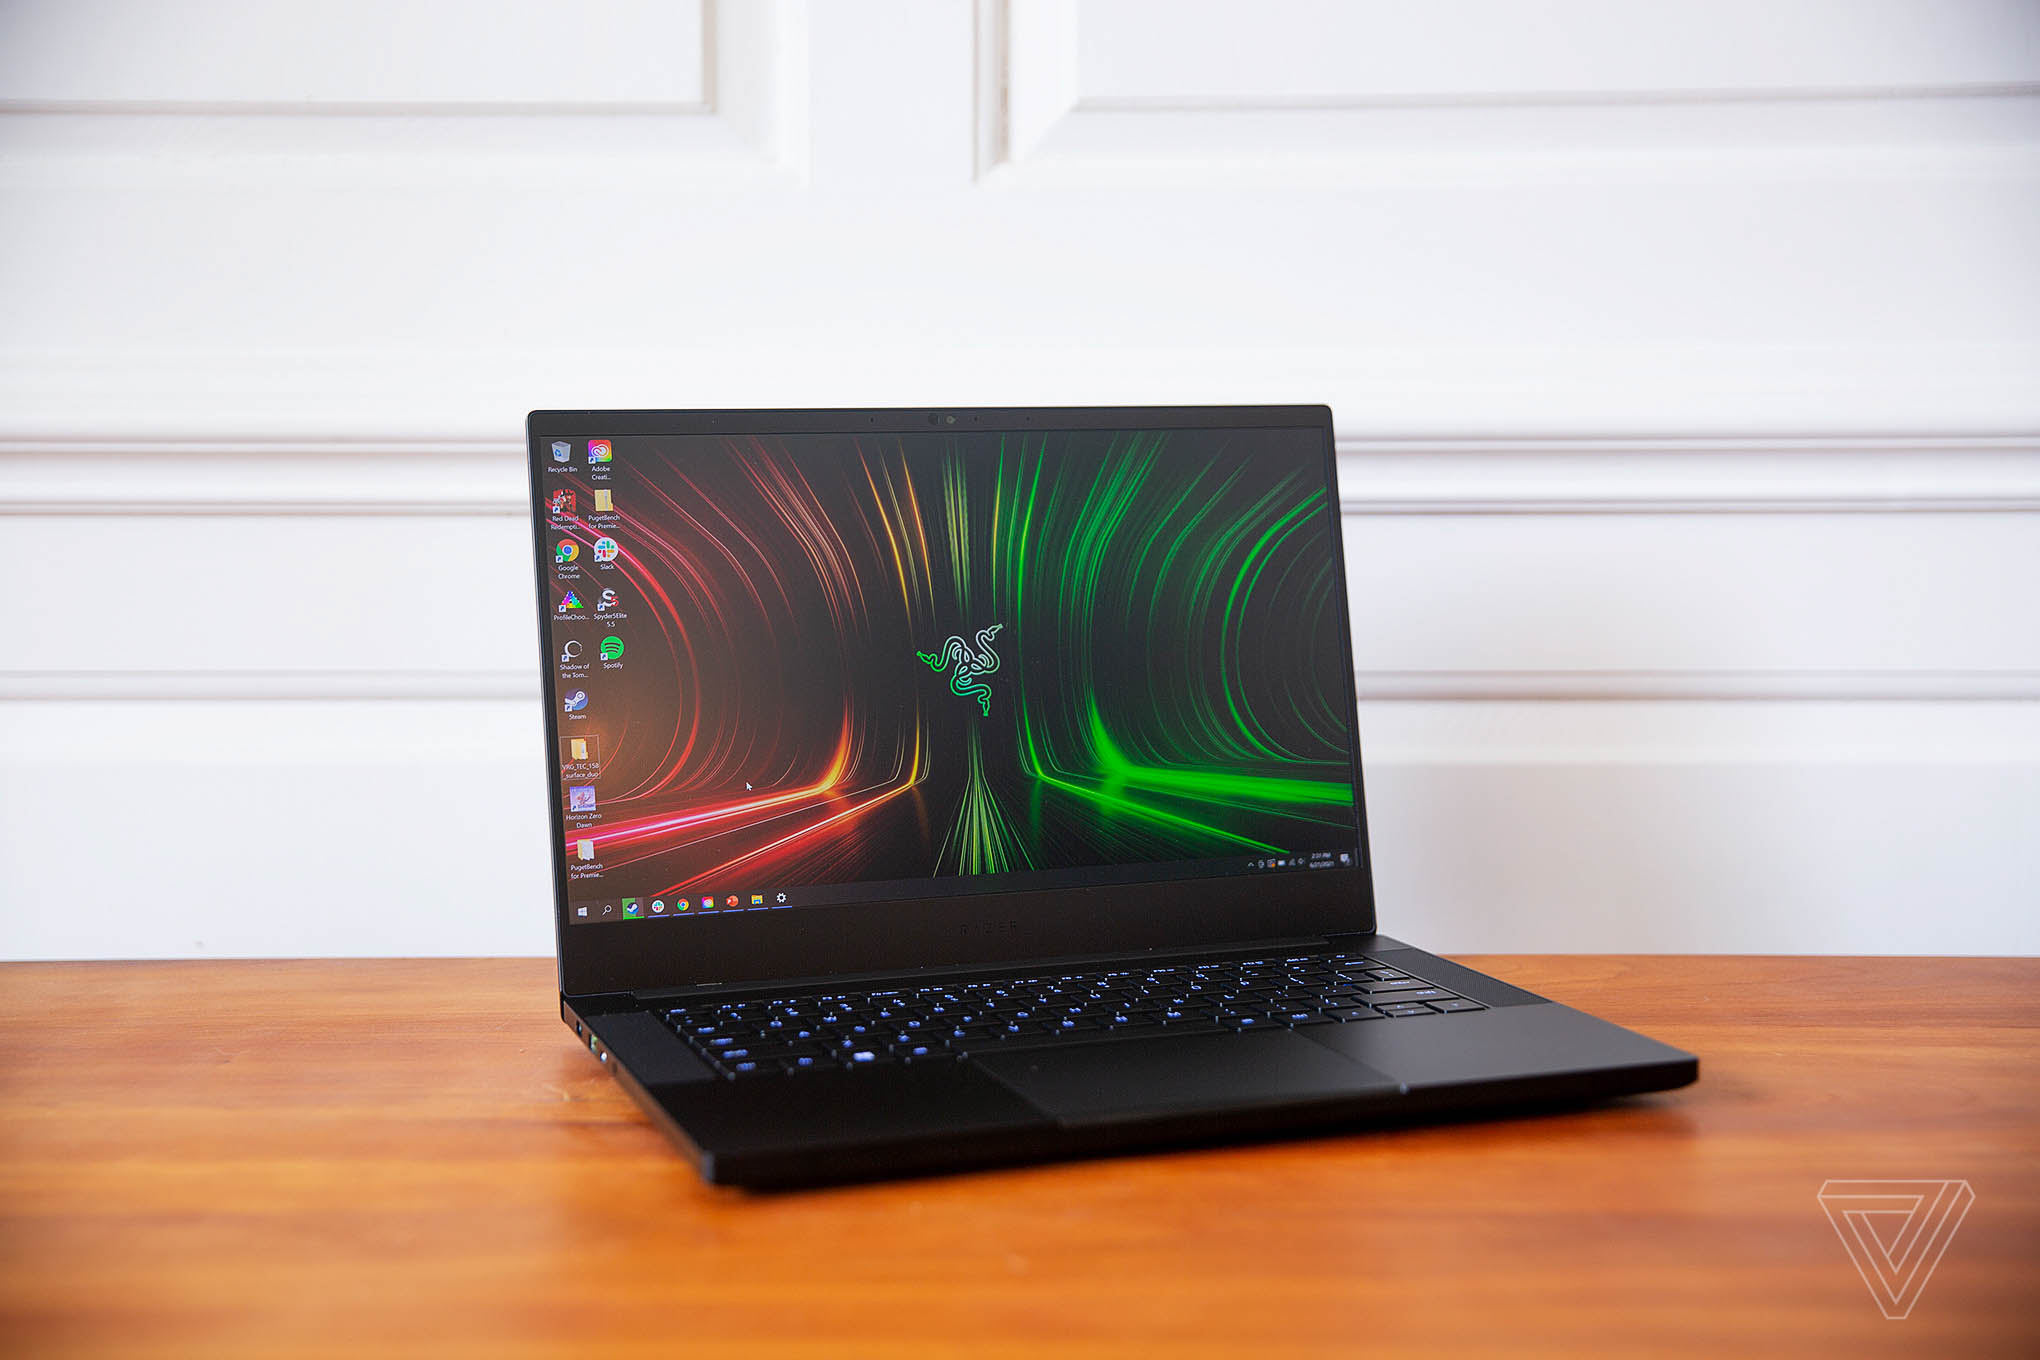 The Razer Blade 14 open, facing the camera, angled to the right. The screen displays the Razer logo on a red and green background.